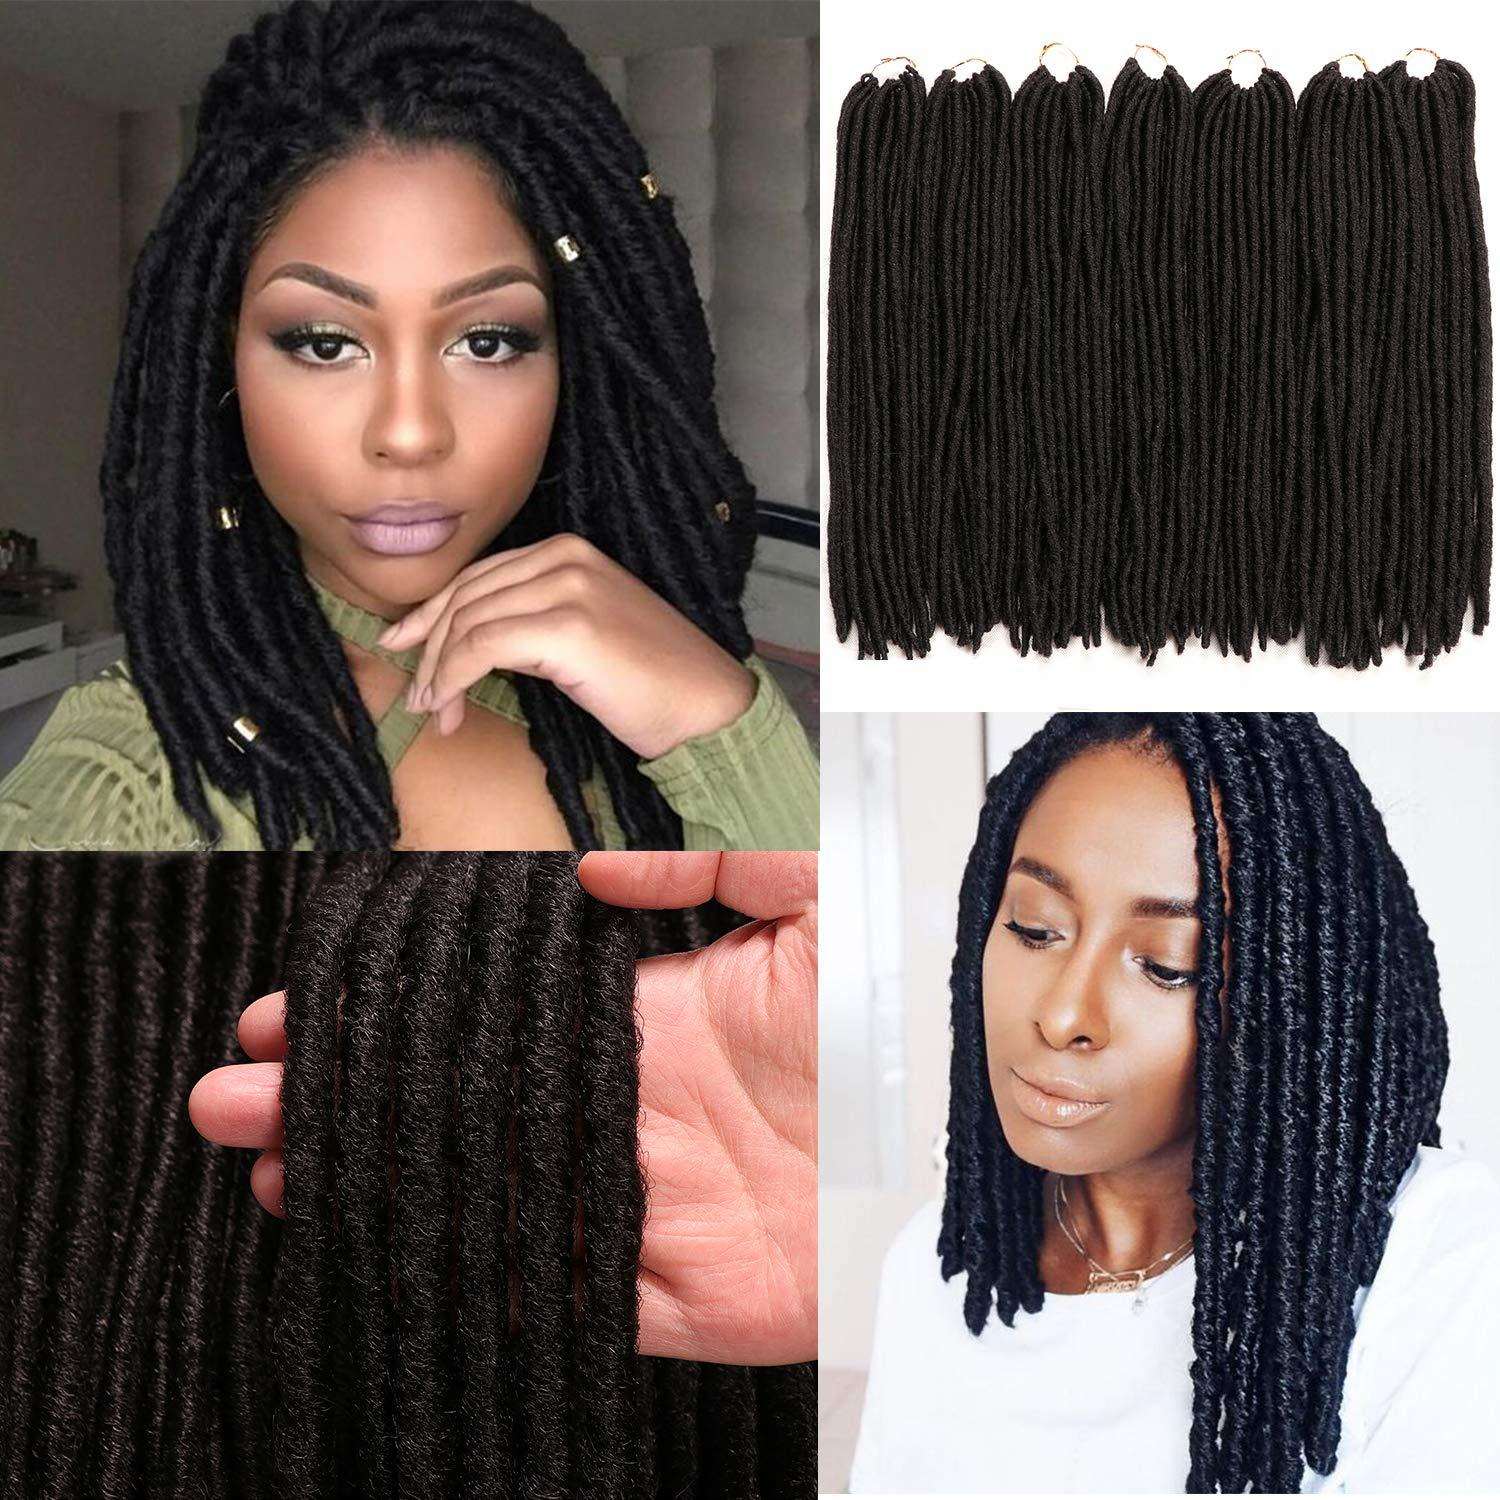 3 Packs Goddess Dreadlocs Faux Locs Hair Extensions Straight Goddess Locs 18 Inch Synthetic Crochet Hair Soft Crochet Braids For Women